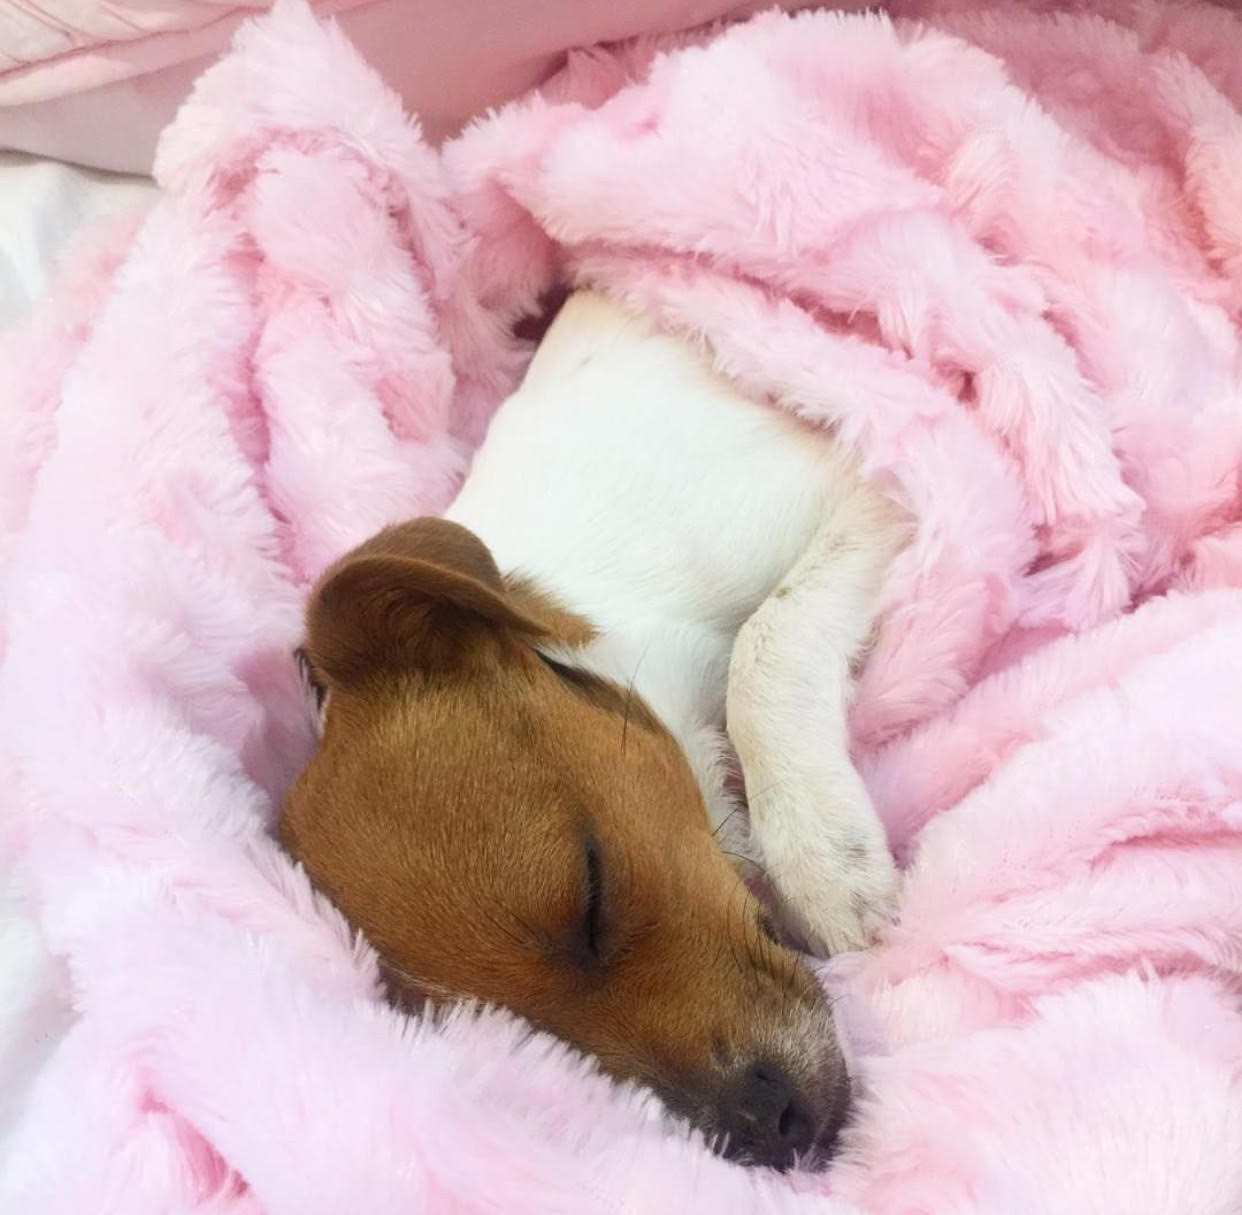 FIONA IS ALL SNUGGLED UP WITH HER NEW FAMILY - SHE IS ONE SPOILED LITTLE PUP... AS SHE SHOULD BE!